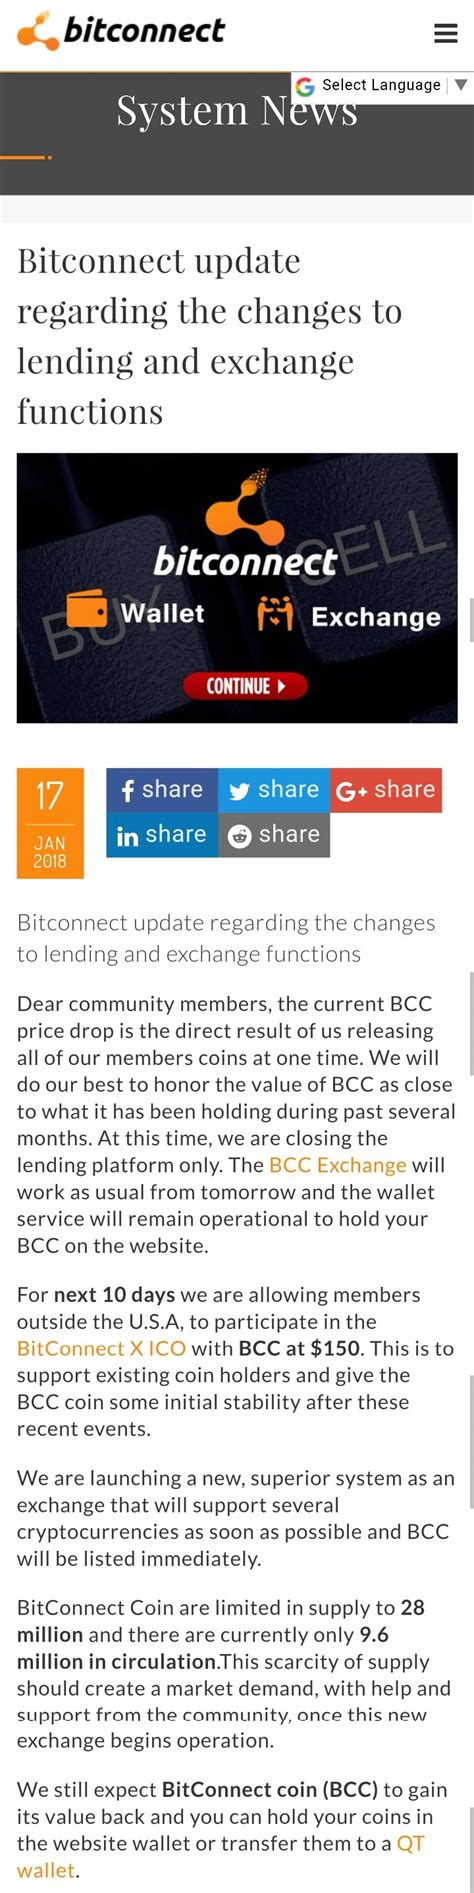 bitconnect converter bitconnect might make a surprising return rather soon